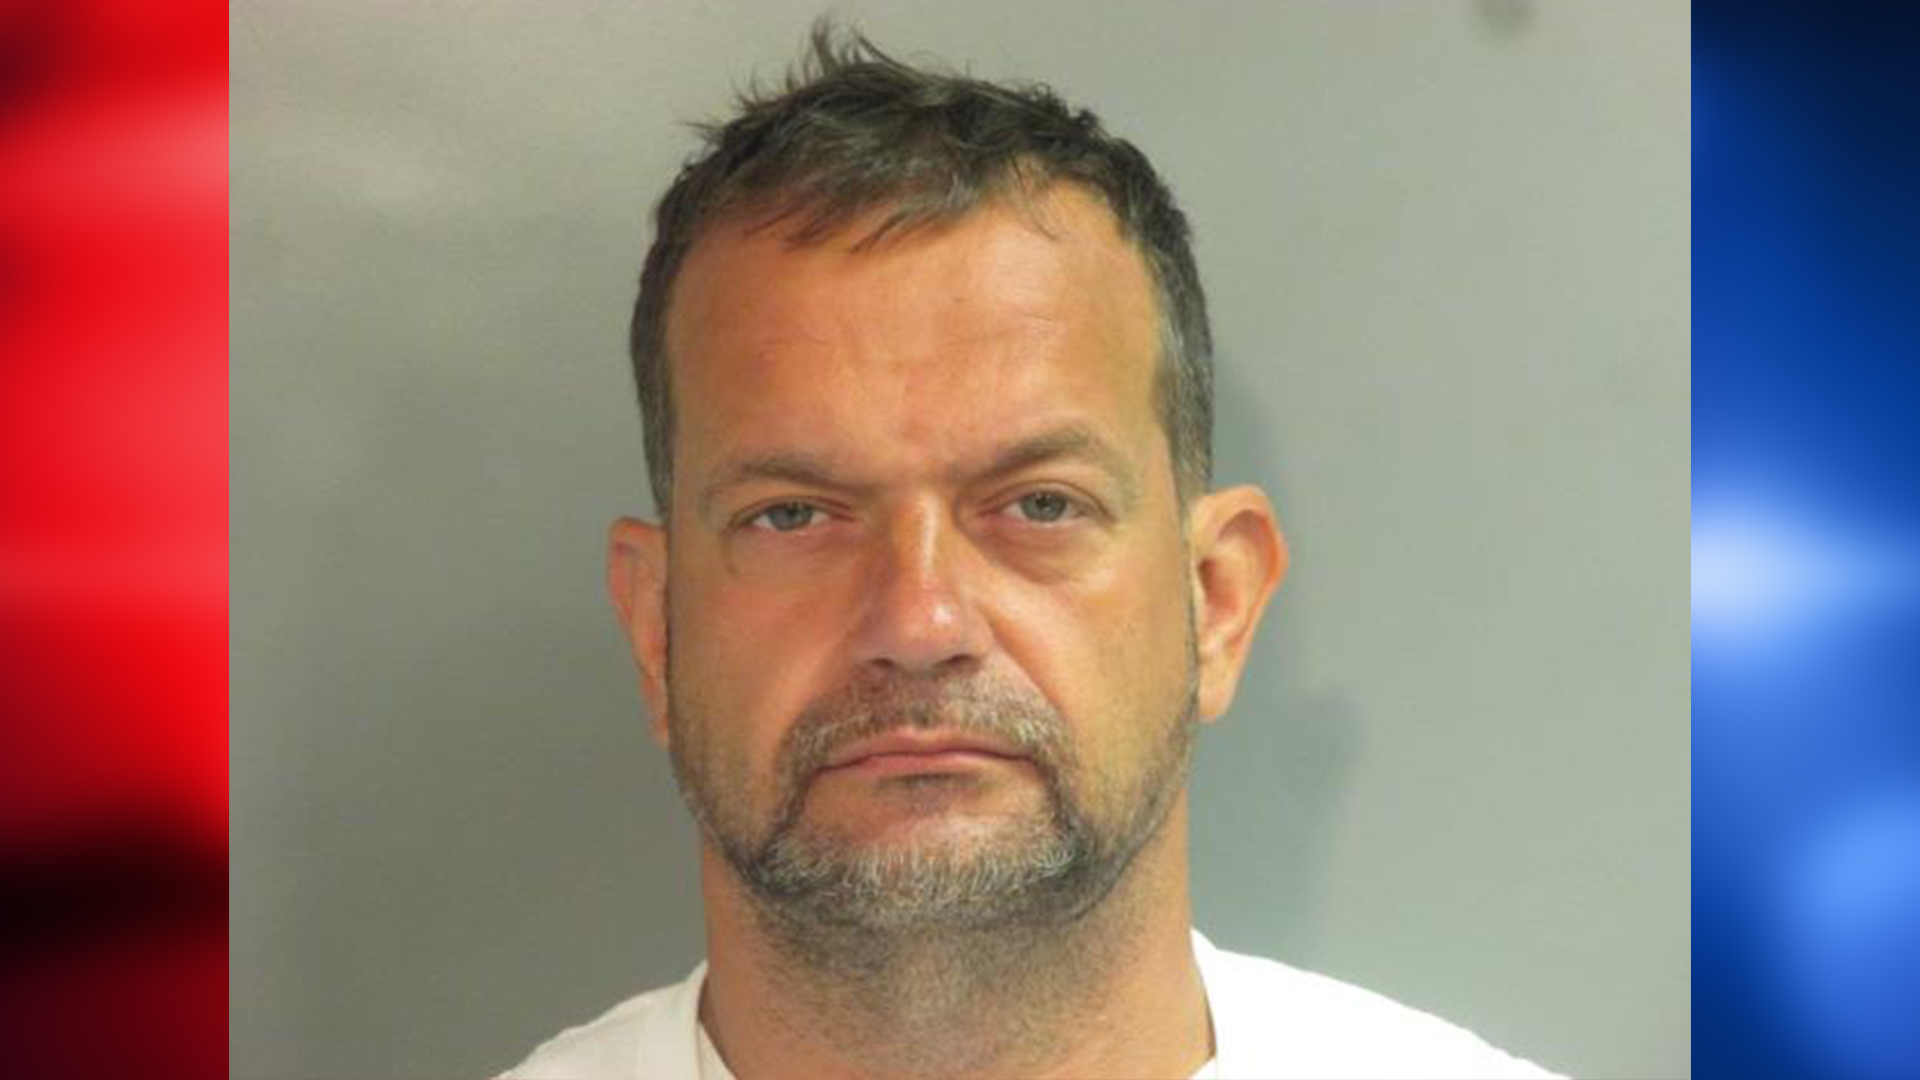 louisiana state police registered sex offenders in Derby